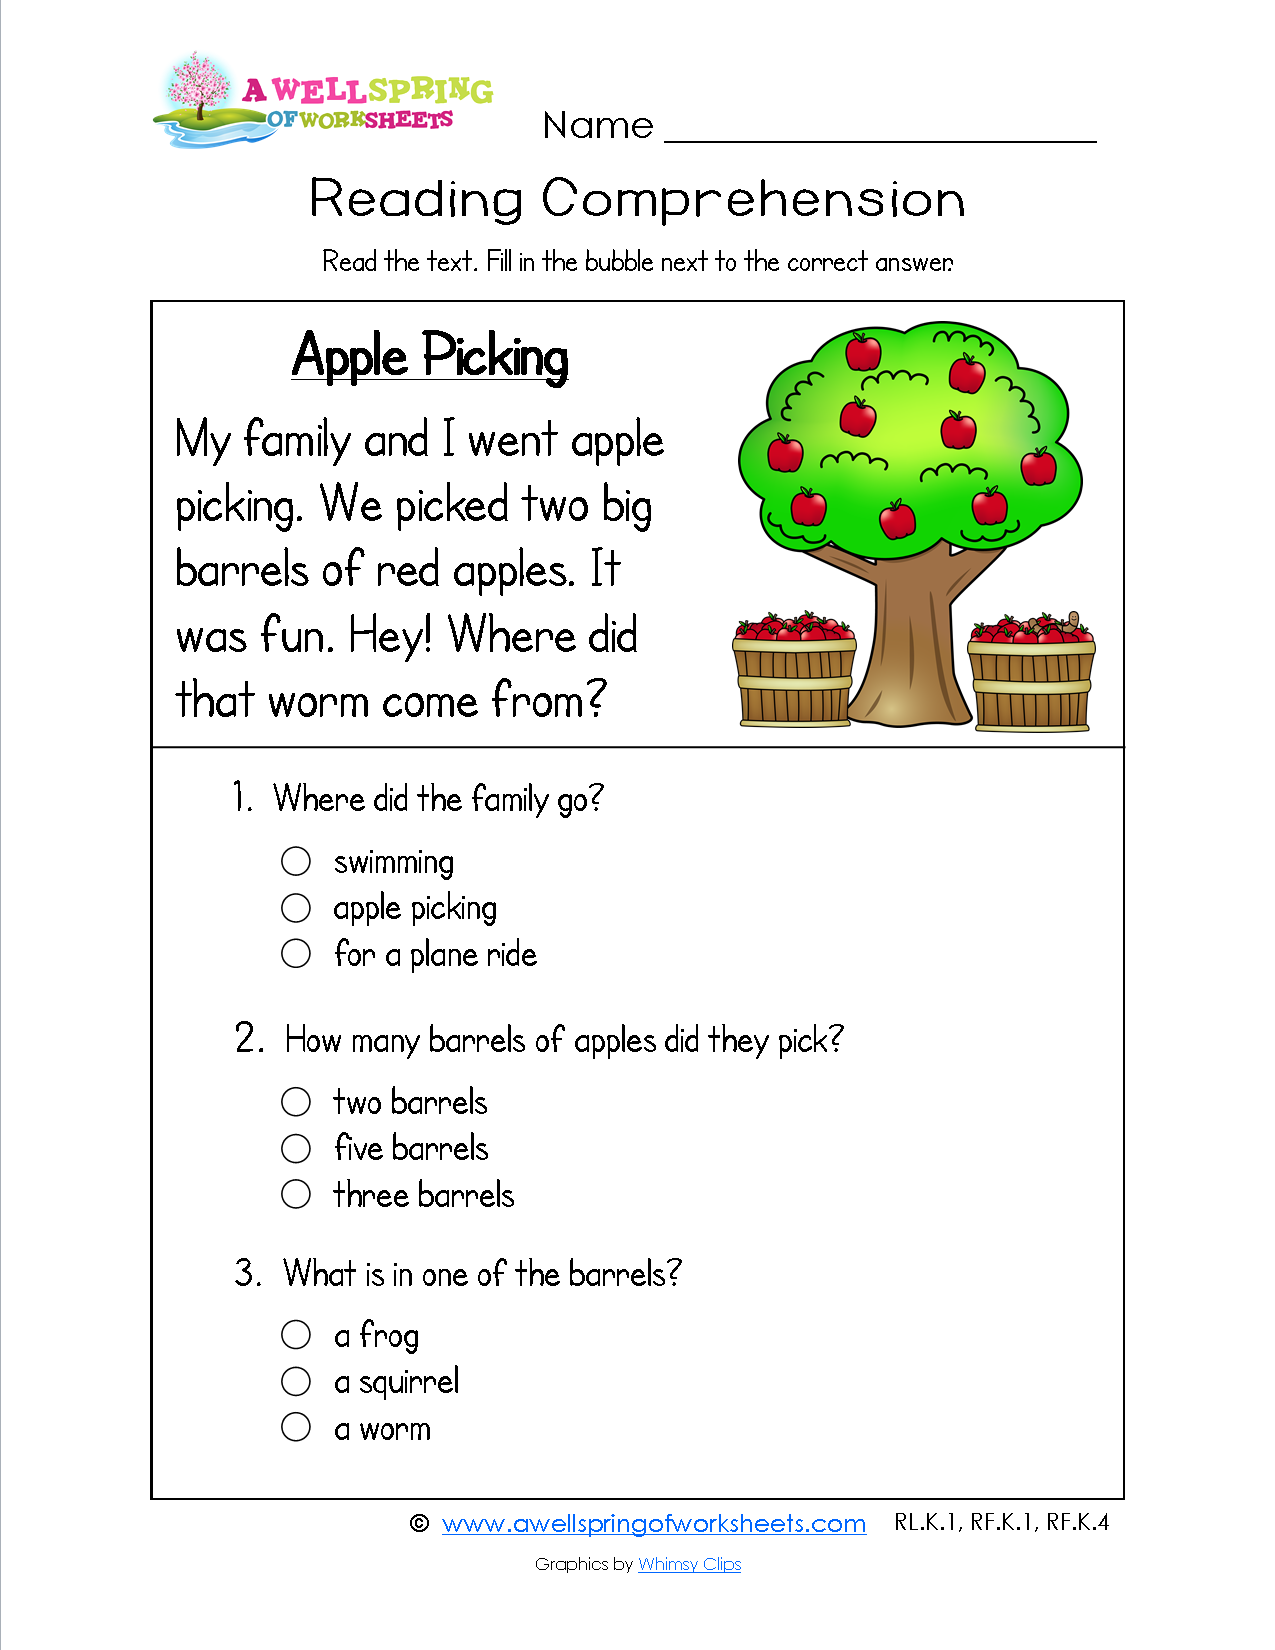 worksheet Kindergarten Listening Comprehension Worksheets grade level worksheets kindergarten reading comprehension guided a wellspring of worksheets